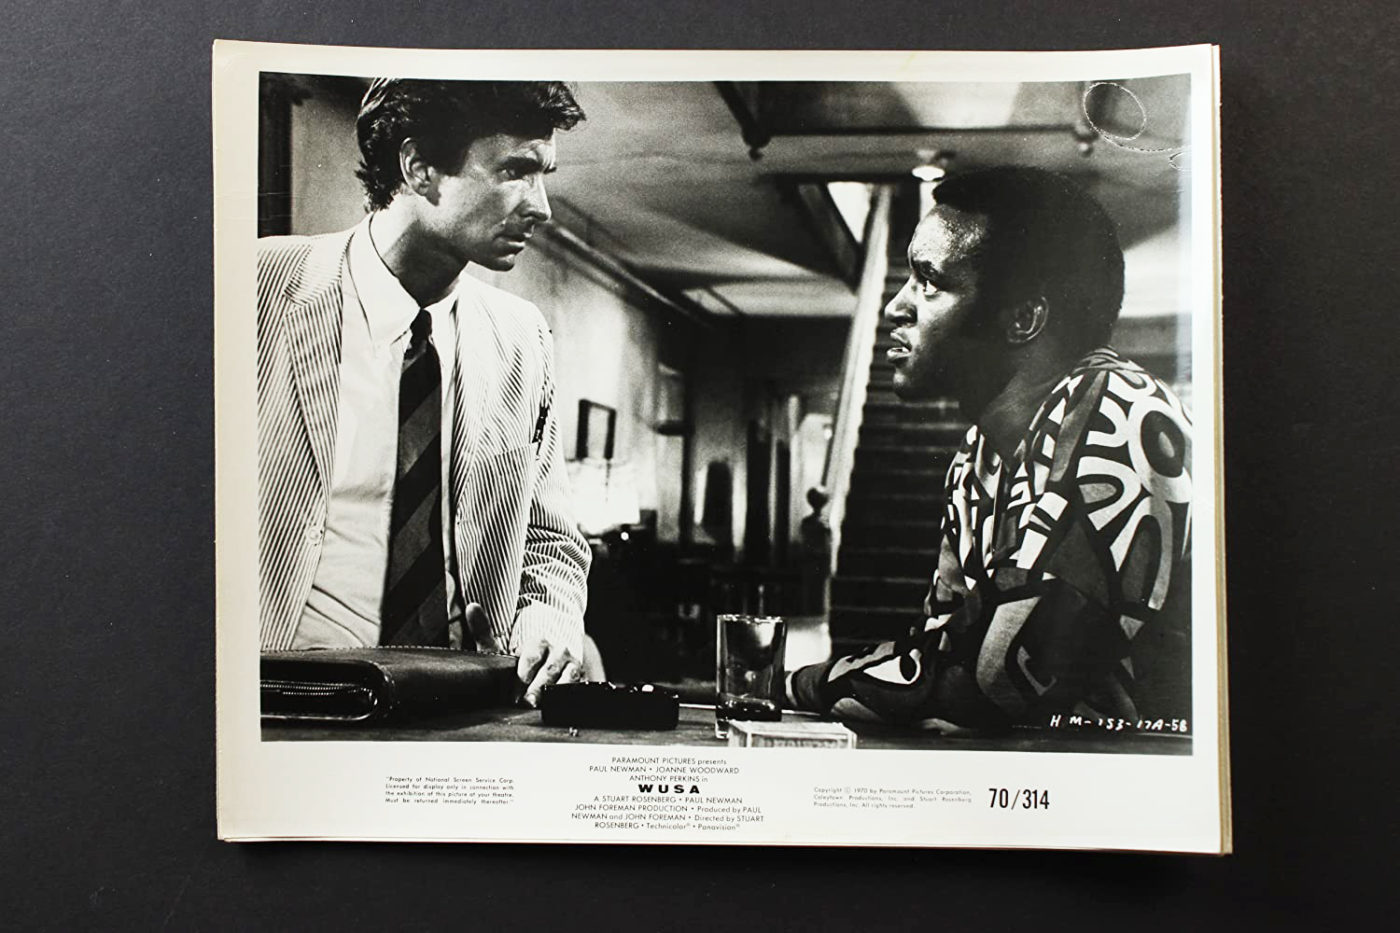 Anthony-Perkins-as-Rainey-and-B.J.-Mason-as-Roosevelt-Berry-in-Paul-Newman's-1970-film-'WUSA'-1400x933, Things don't get no better, Culture Currents